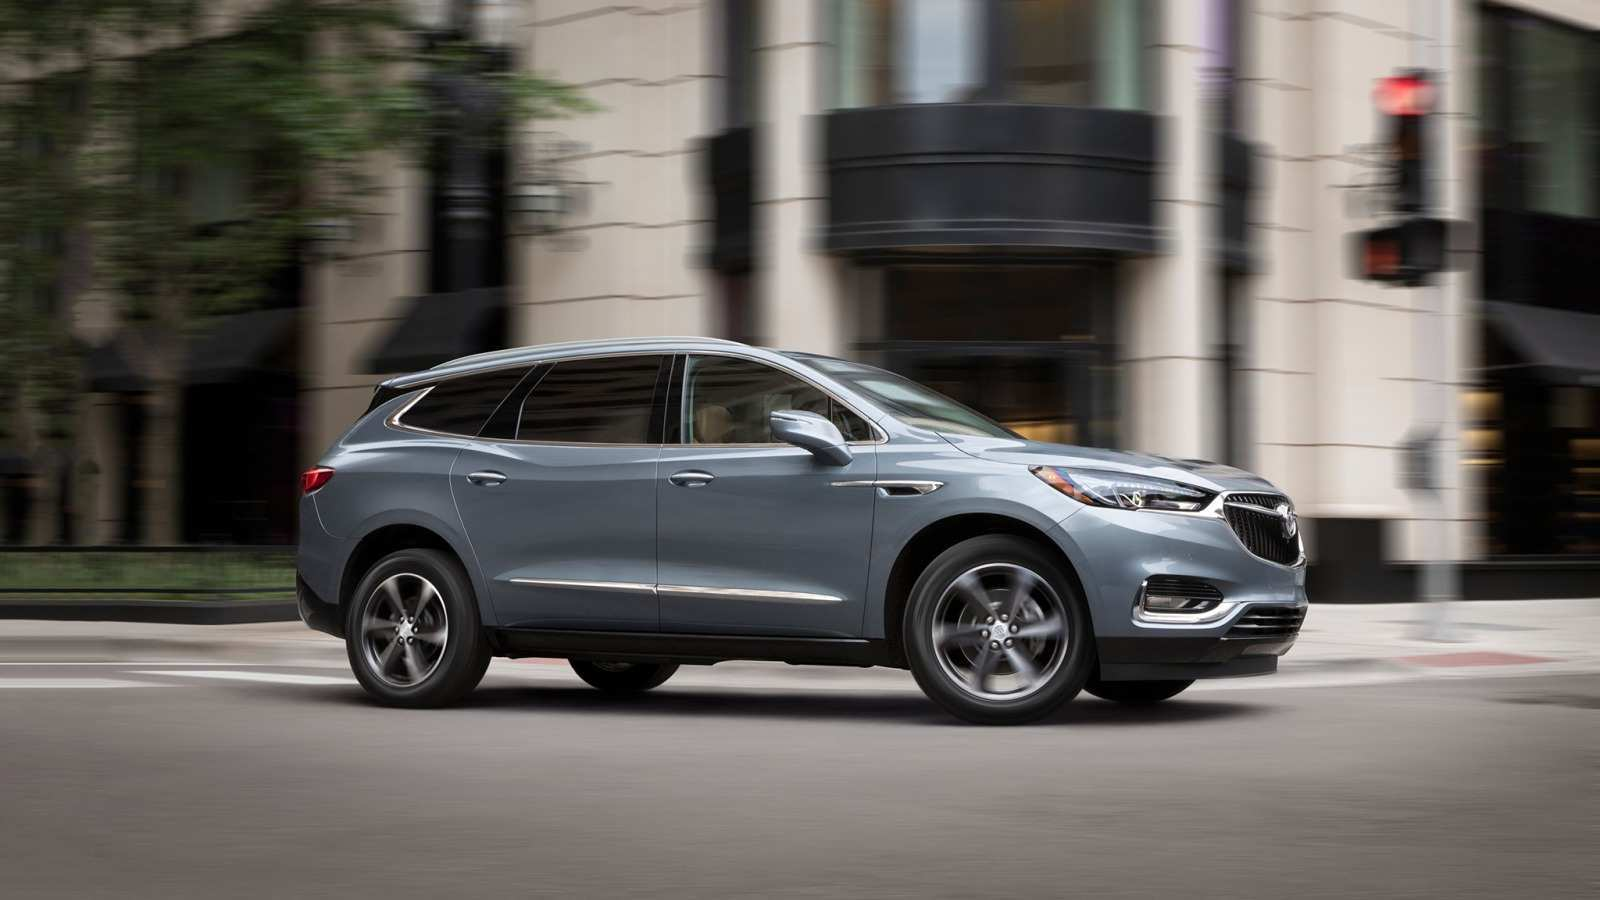 43 The Best 2019 Buick Enclave Configurations